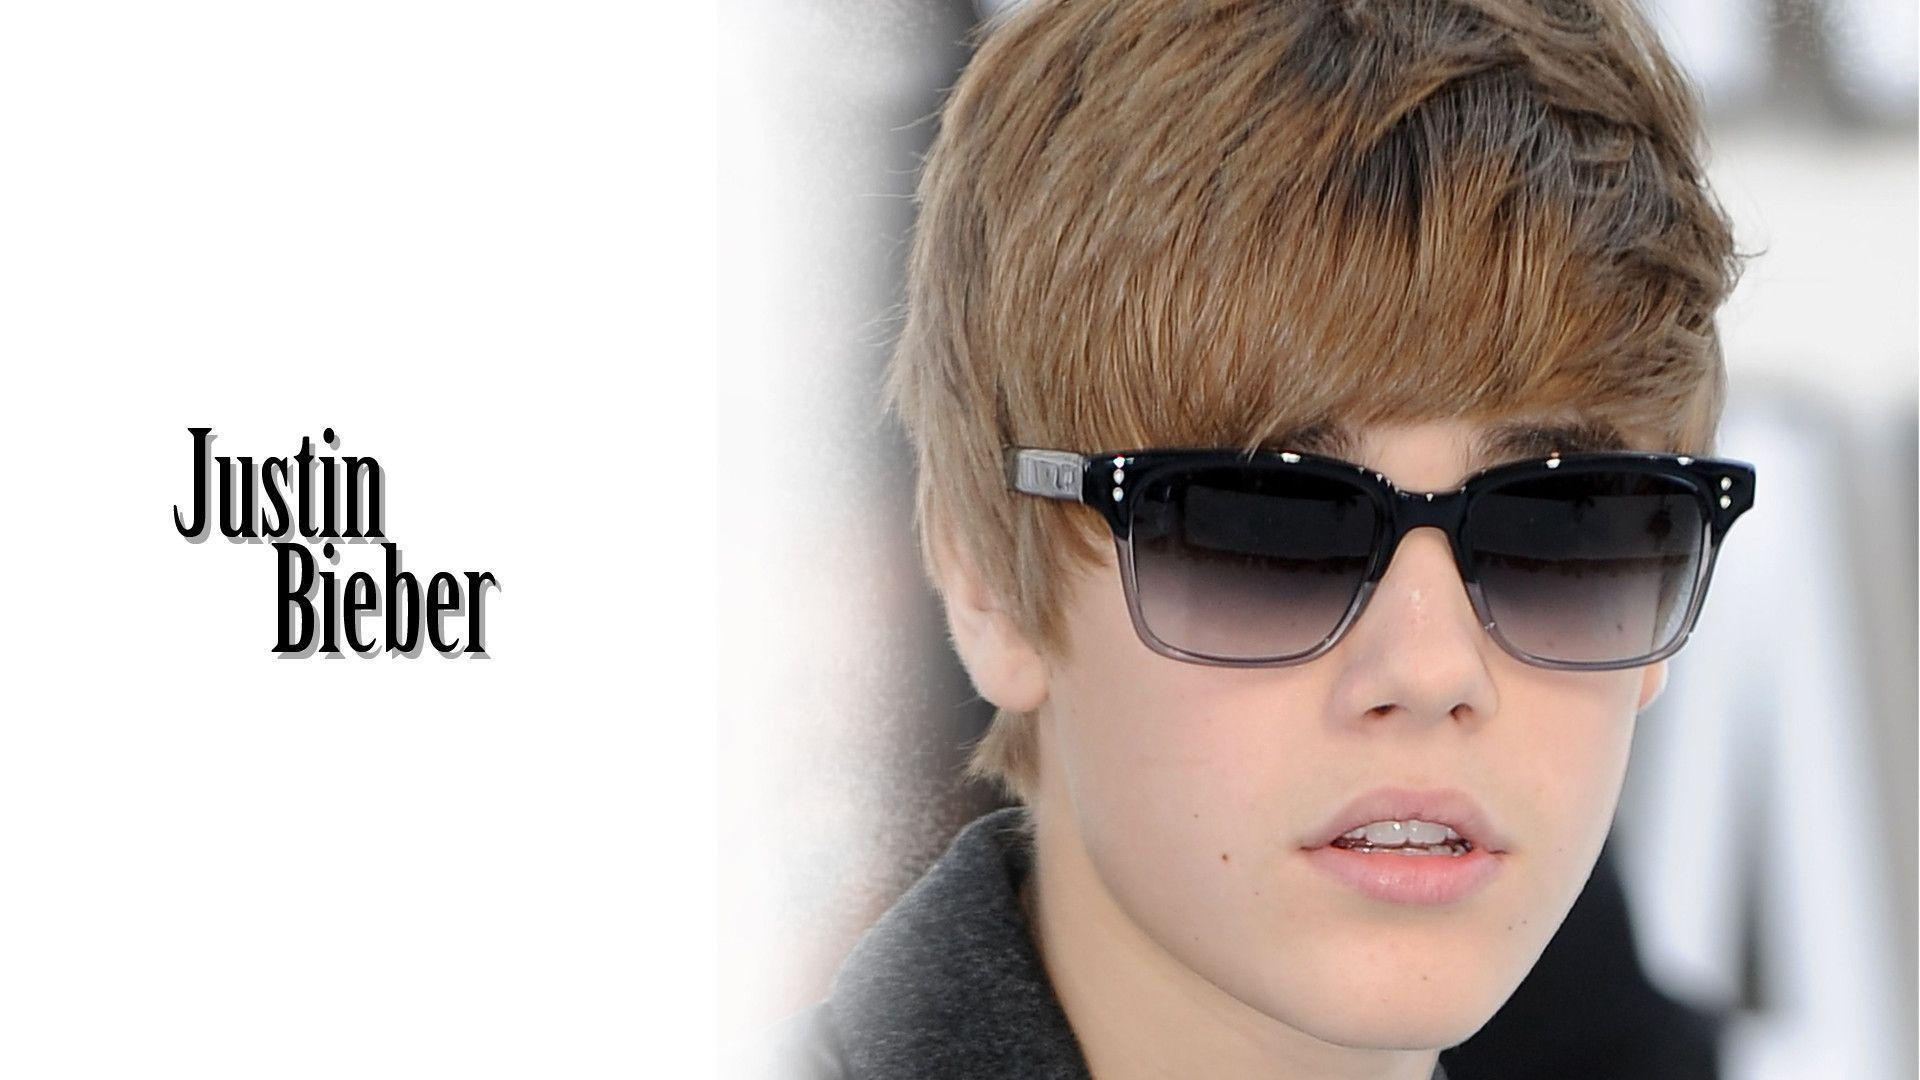 g1 justin bieber wallpapers HD free wallpapers backgrounds image